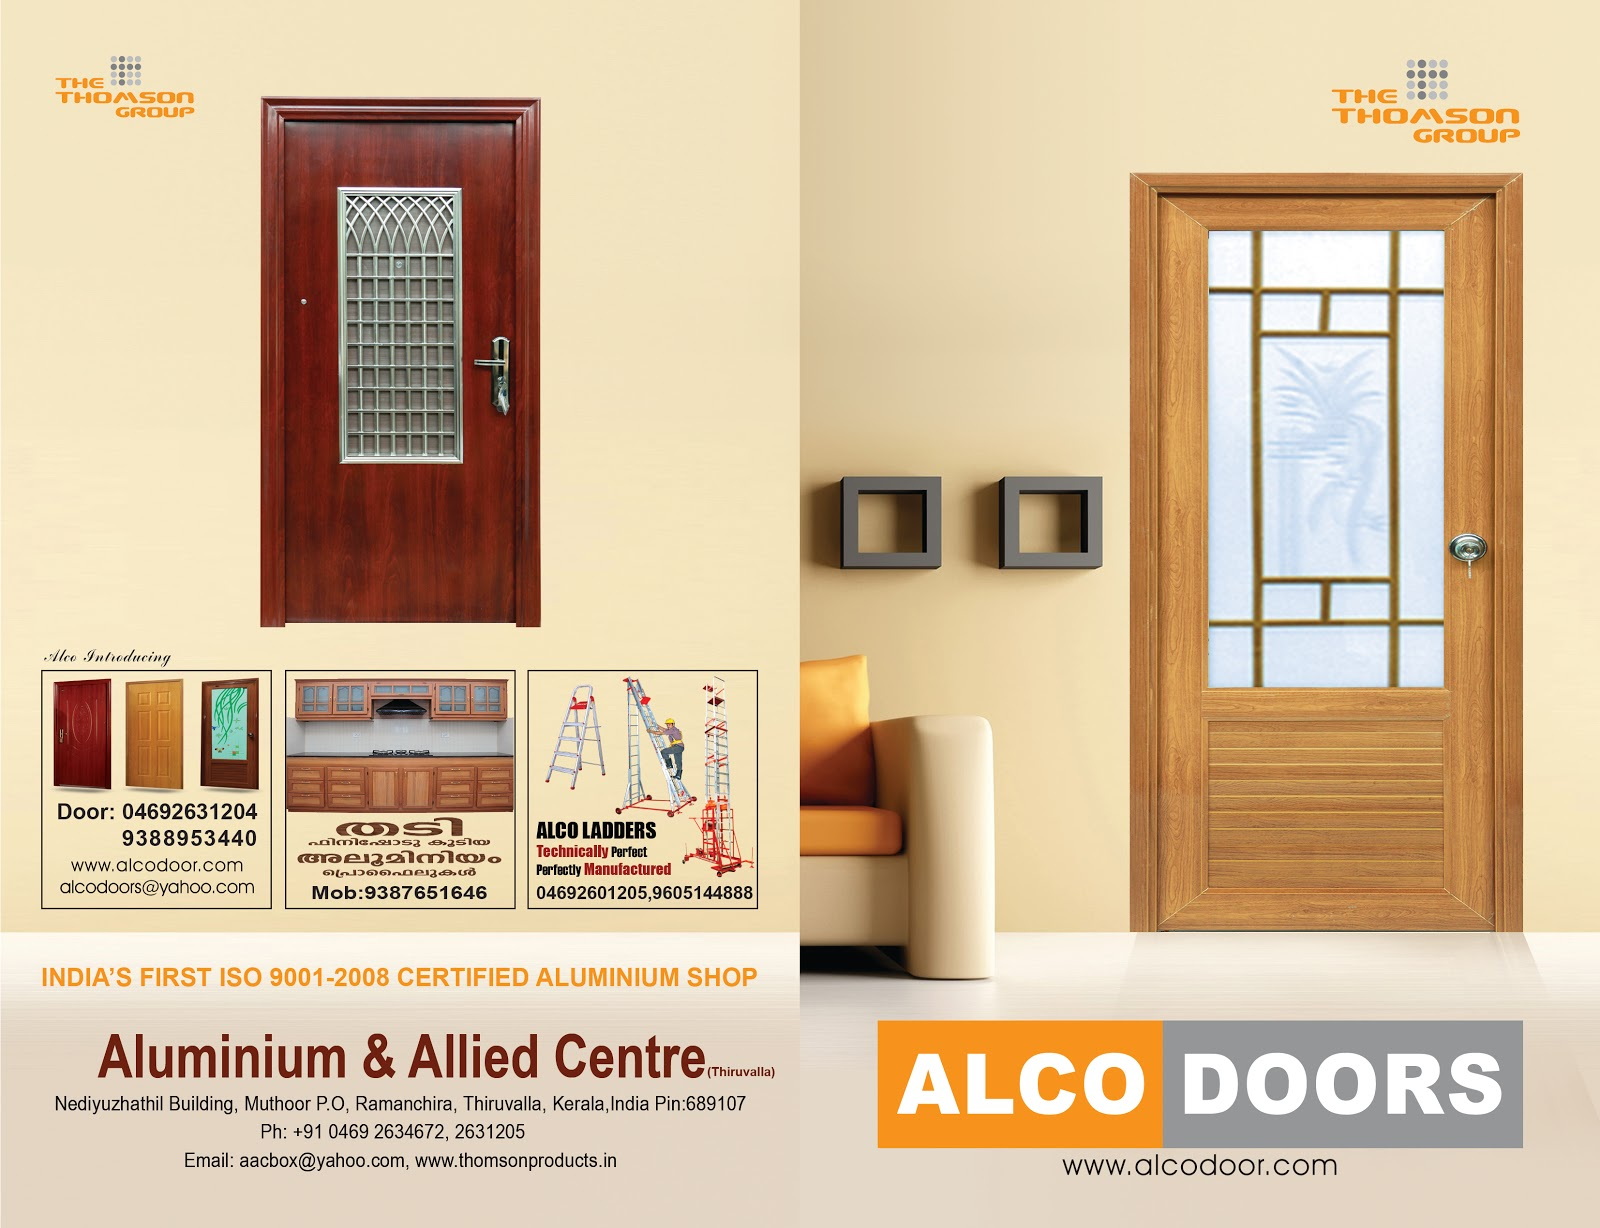 Bathroom Doors Trivandrum alco aluminium pvc branded products: alco doors